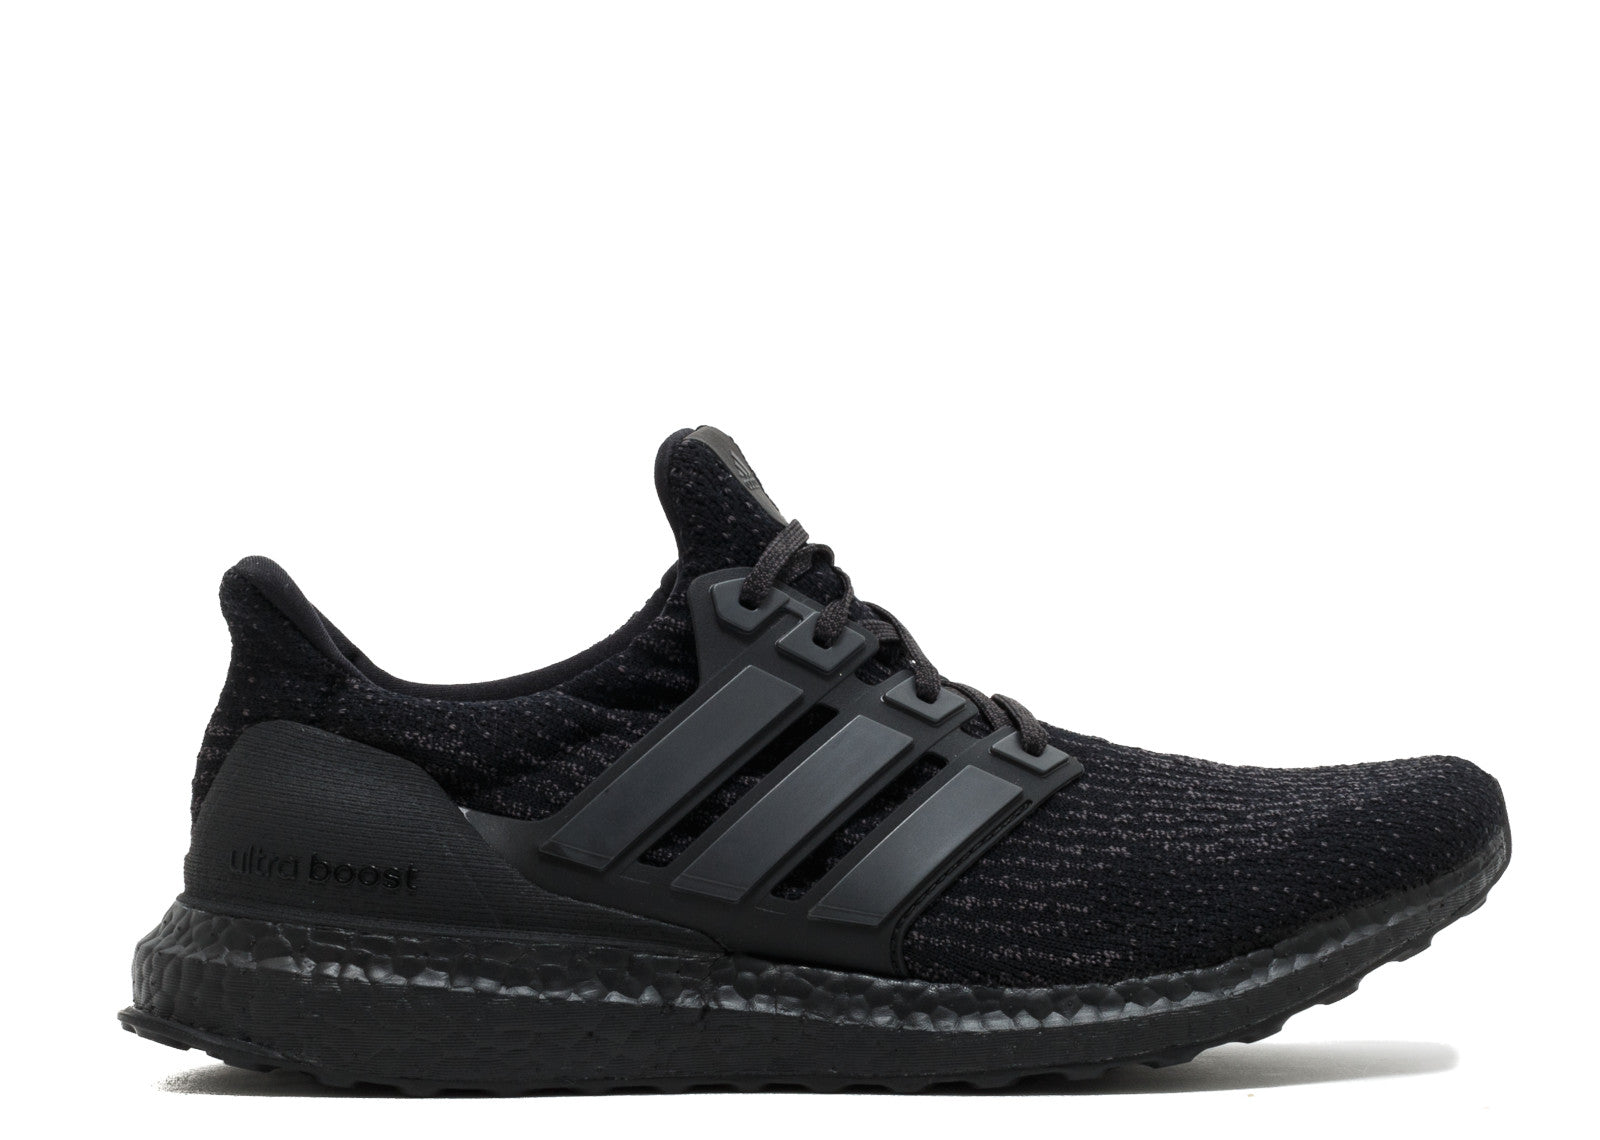 c7f35156594ea Adidas Ultra Boost Triple Black 2.0 – Street Sole